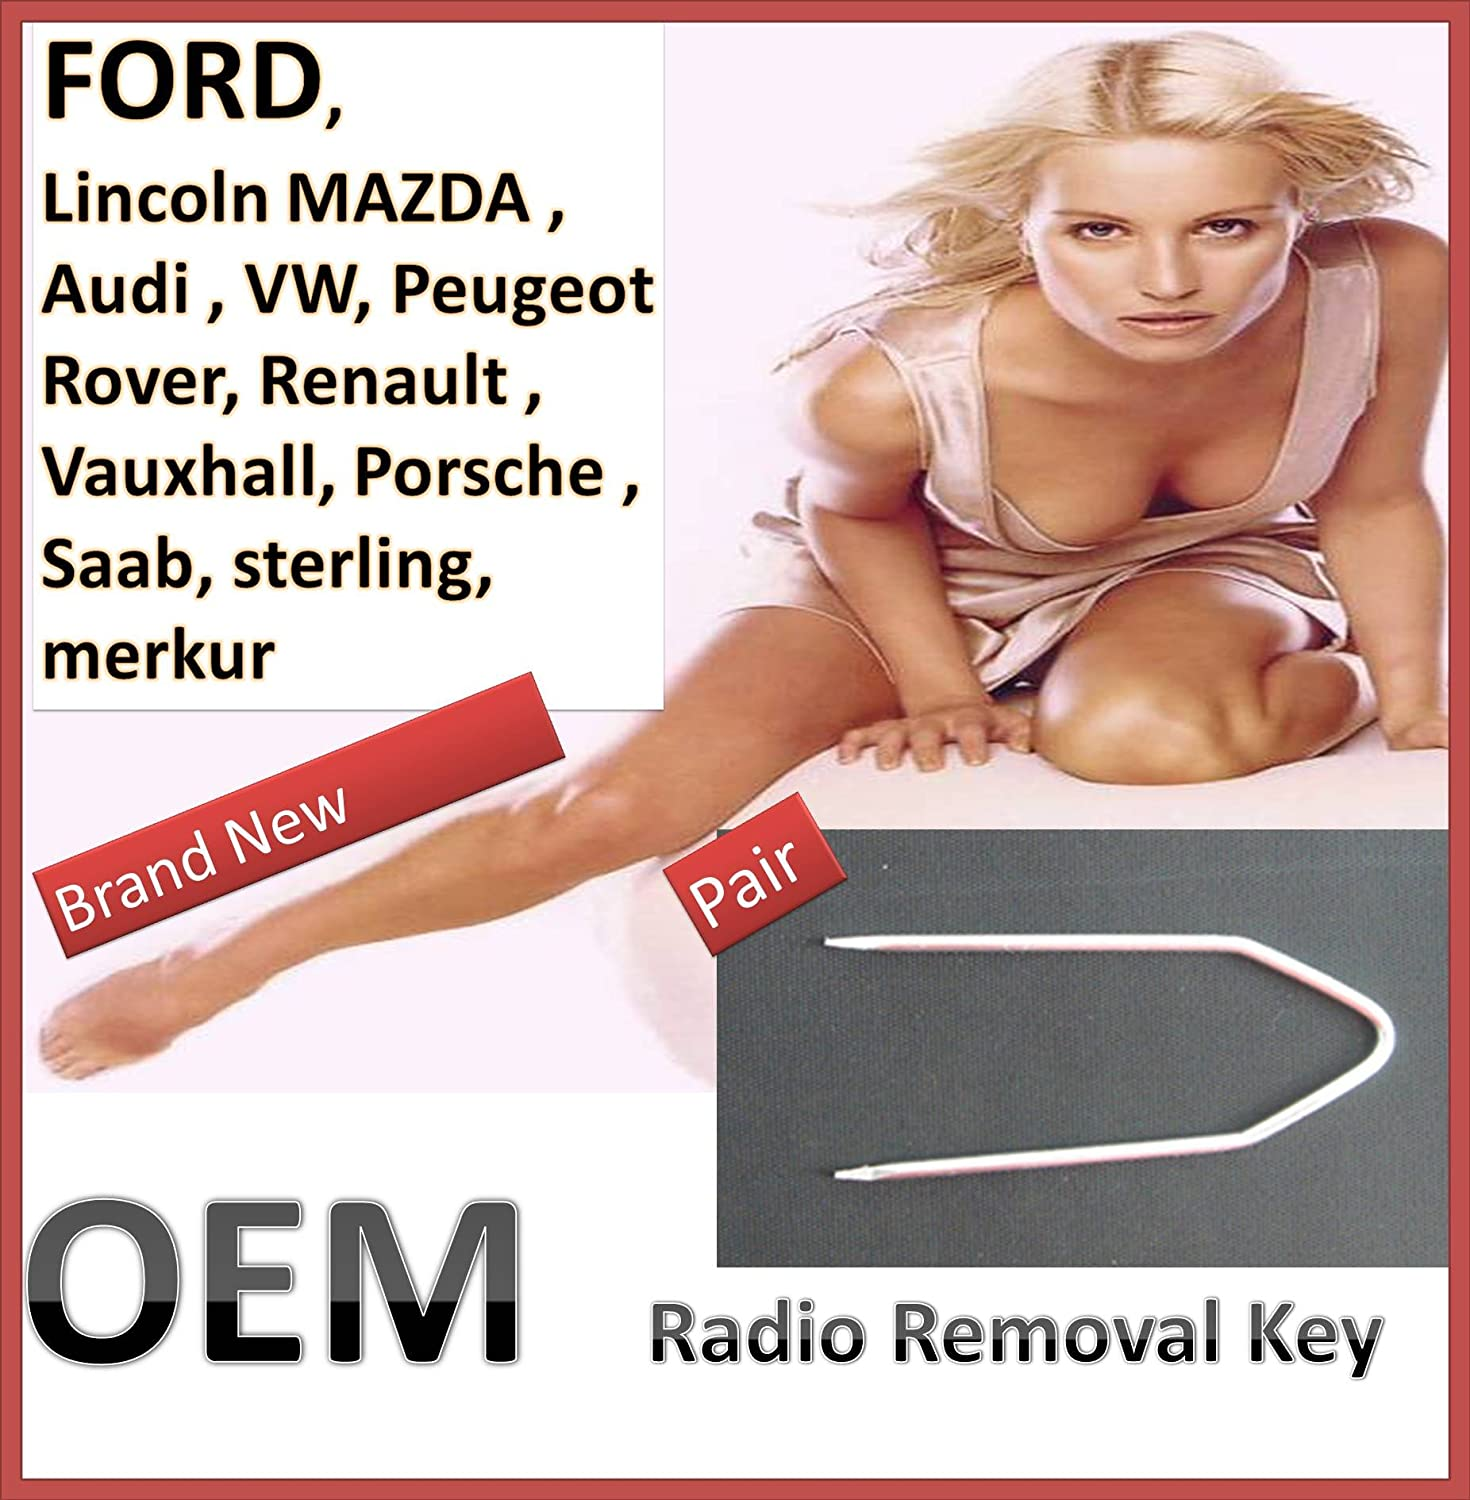 Factory Radio Removal Tool Set for Ford Vehicles